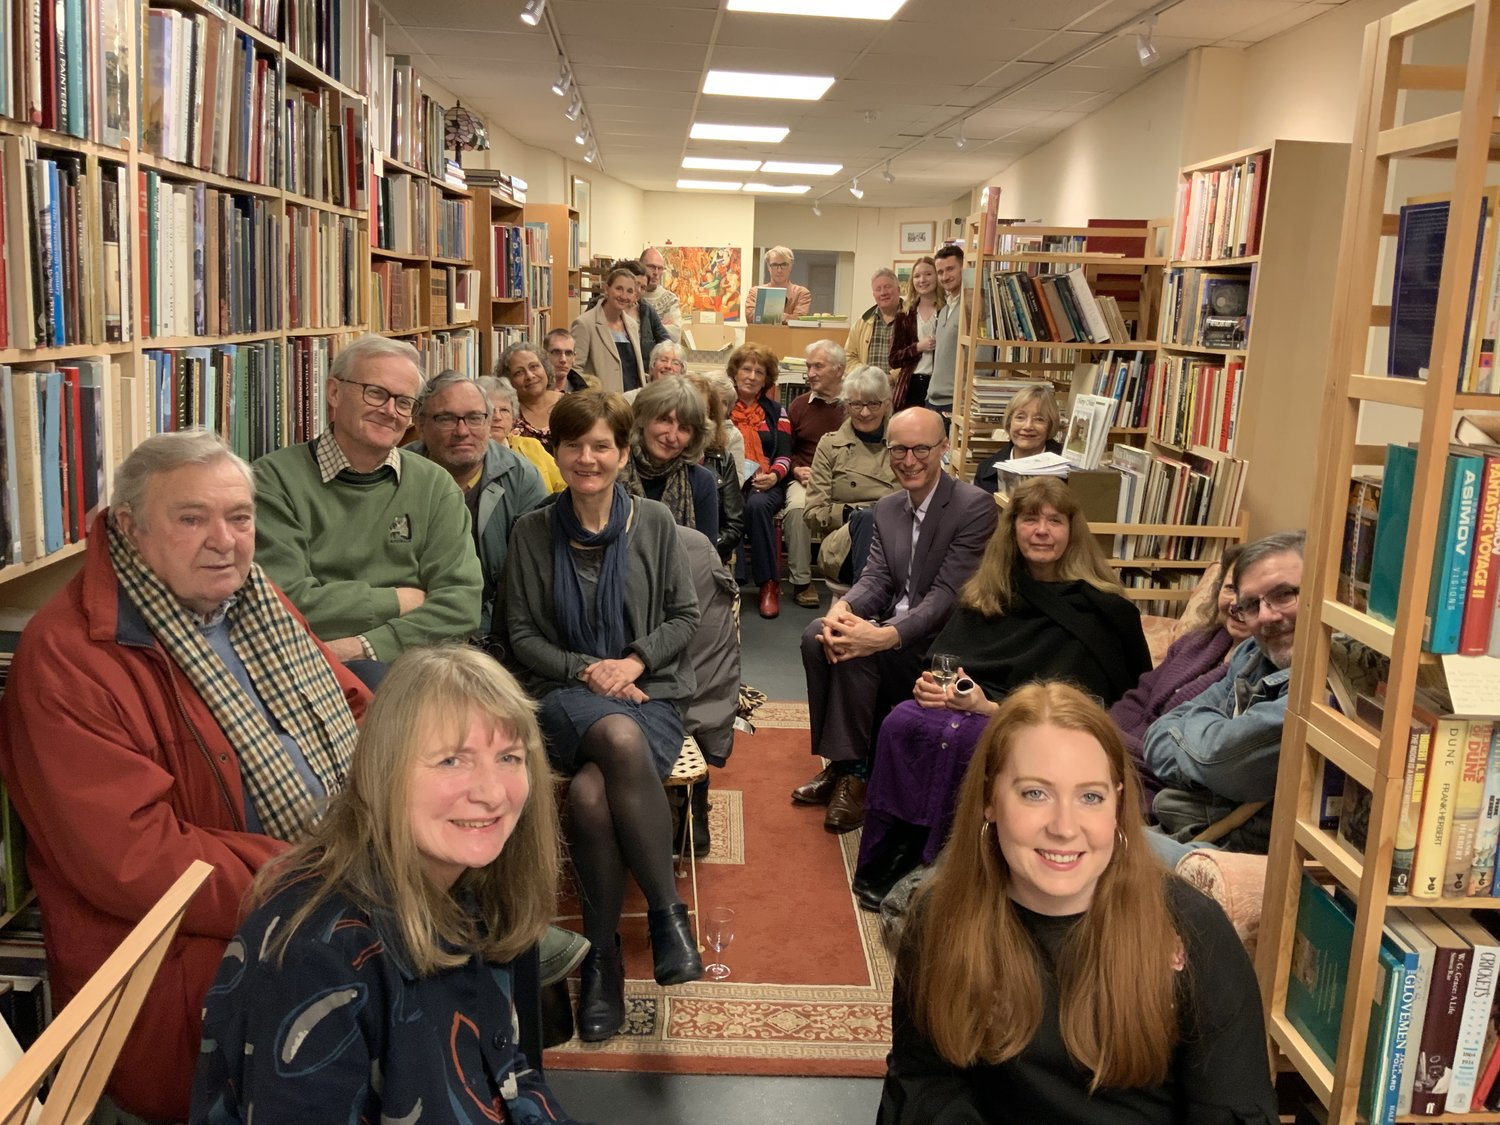 Launch of Adversaries / Comrades - In March, we travelled to Dorchester (Dorset) to host and celebrate the launch of Gail Aldwin's debut poetry pamphlet, adversaries / comrades.Surrounded by books, we celebrated with wine, music from Magdalena Atkinson and readings from Gail herself.